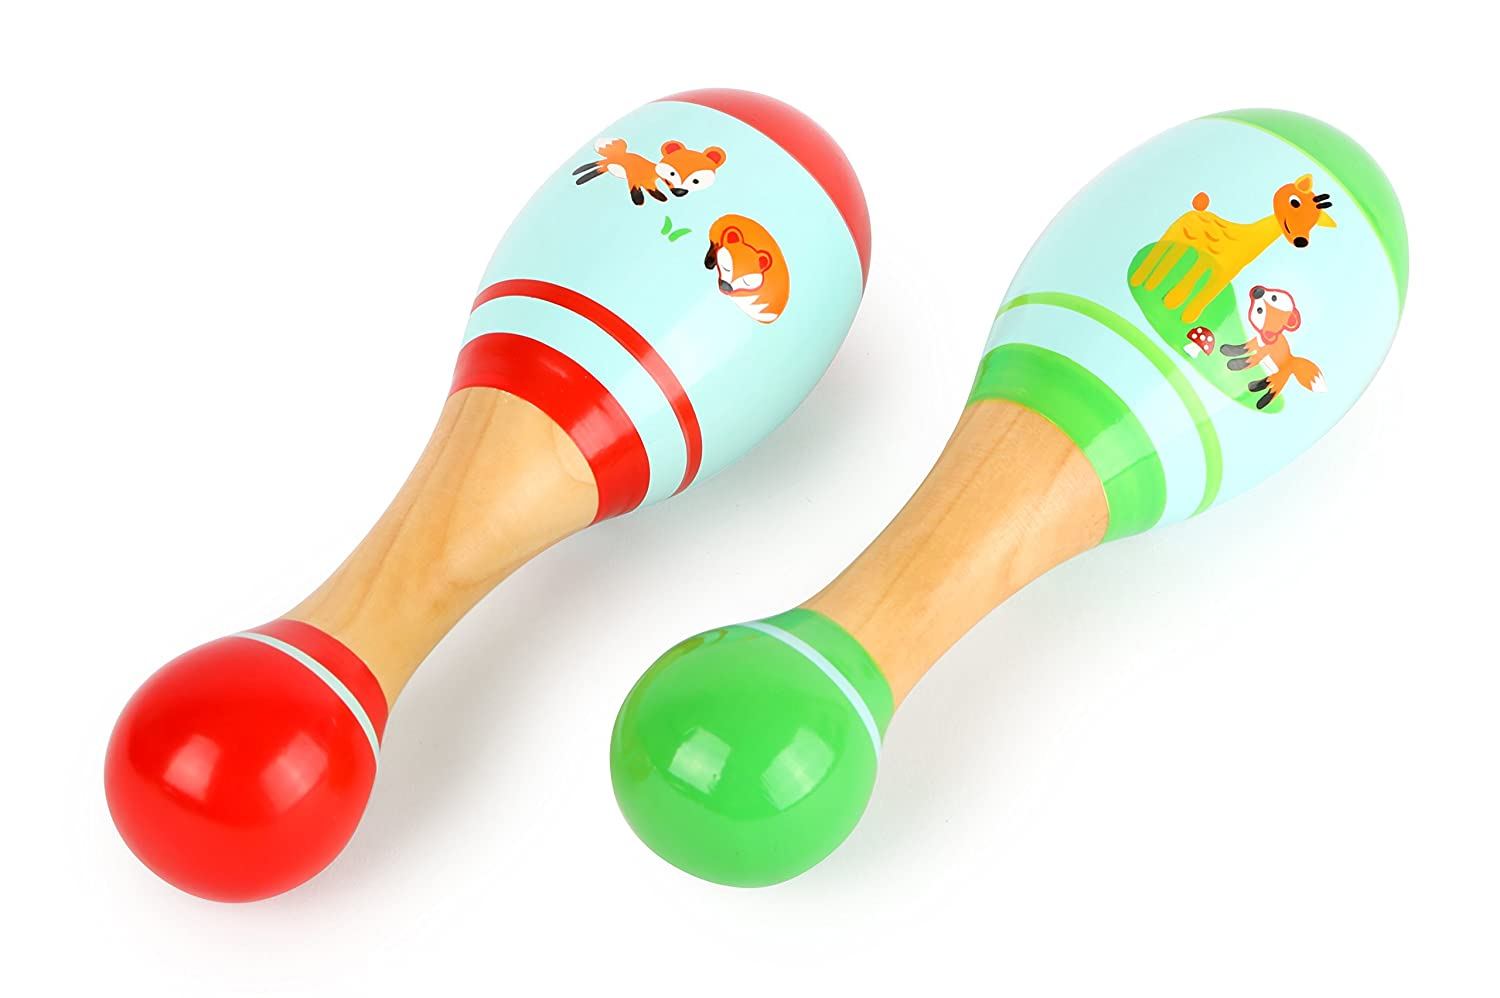 Small Foot Maracas in Legno Colorato per Bambini, 10723 Small Foot by Legler